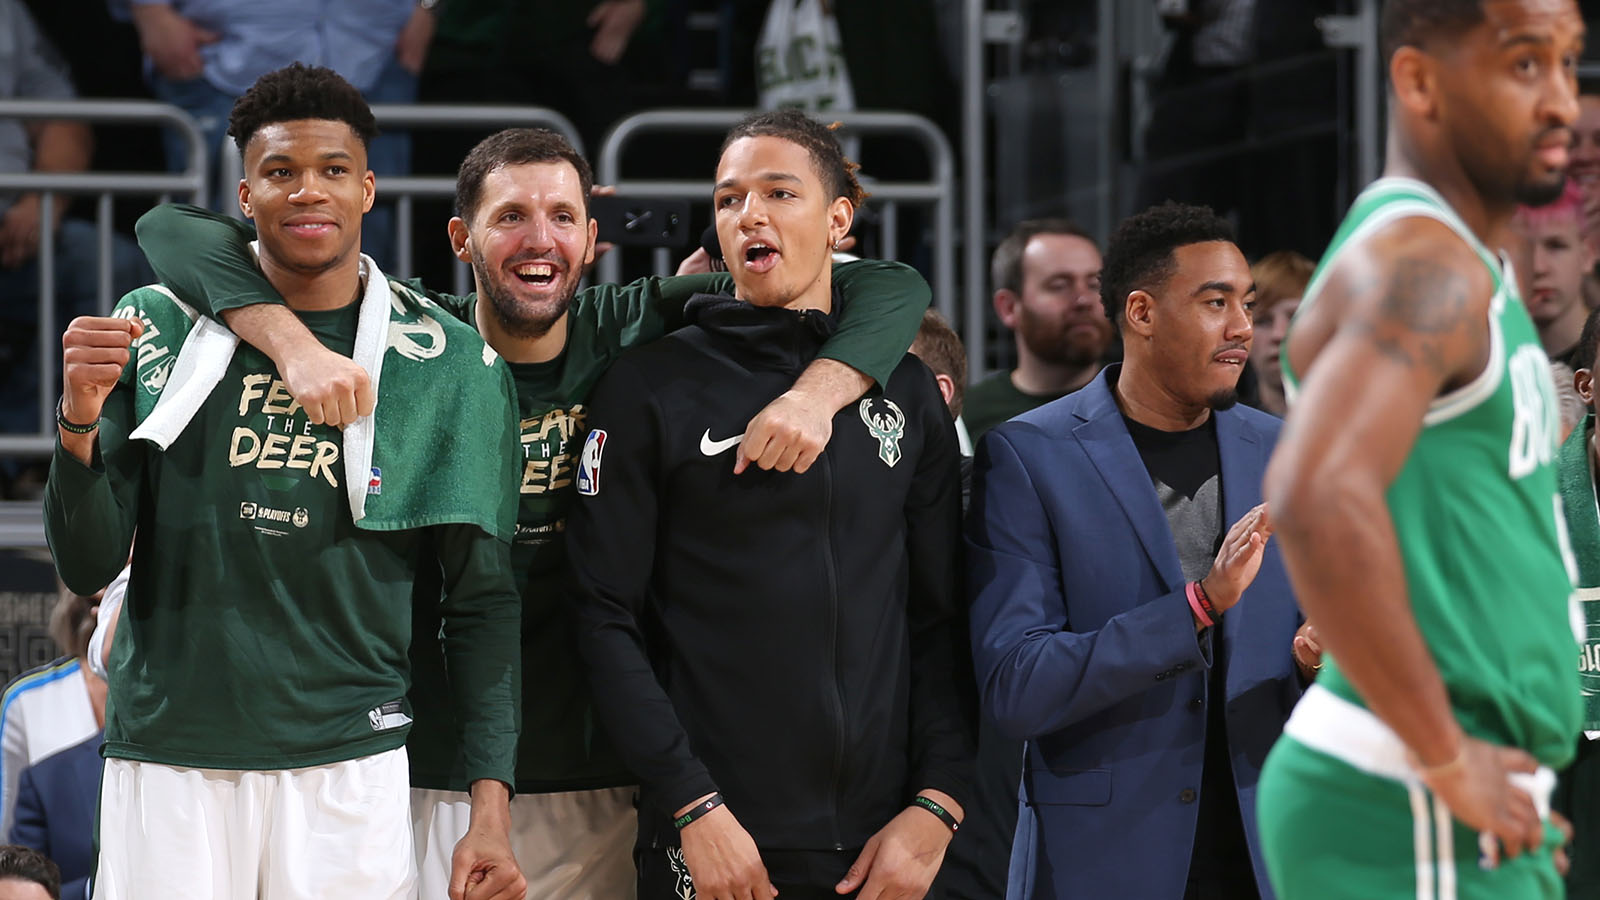 MILWAUKEE, WI - MAY 8: Giannis Antetokounmpo #34, Nikola Mirotic #41, and D.J. Wilson #5 of the Milwaukee Bucks look on against the Boston Celtics during Game Five of the Eastern Conference Semifinals of the 2019 NBA Playoffs on May 8, 2019 at the Fiserv Forum in Milwaukee, Wisconsin. NOTE TO USER: User expressly acknowledges and agrees that, by downloading and/or using this photograph, user is consenting to the terms and conditions of the Getty Images License Agreement. Mandatory Copyright Notice: Copyright 2019 NBAE (Photo by Gary Dineen/NBAE via Getty Images)